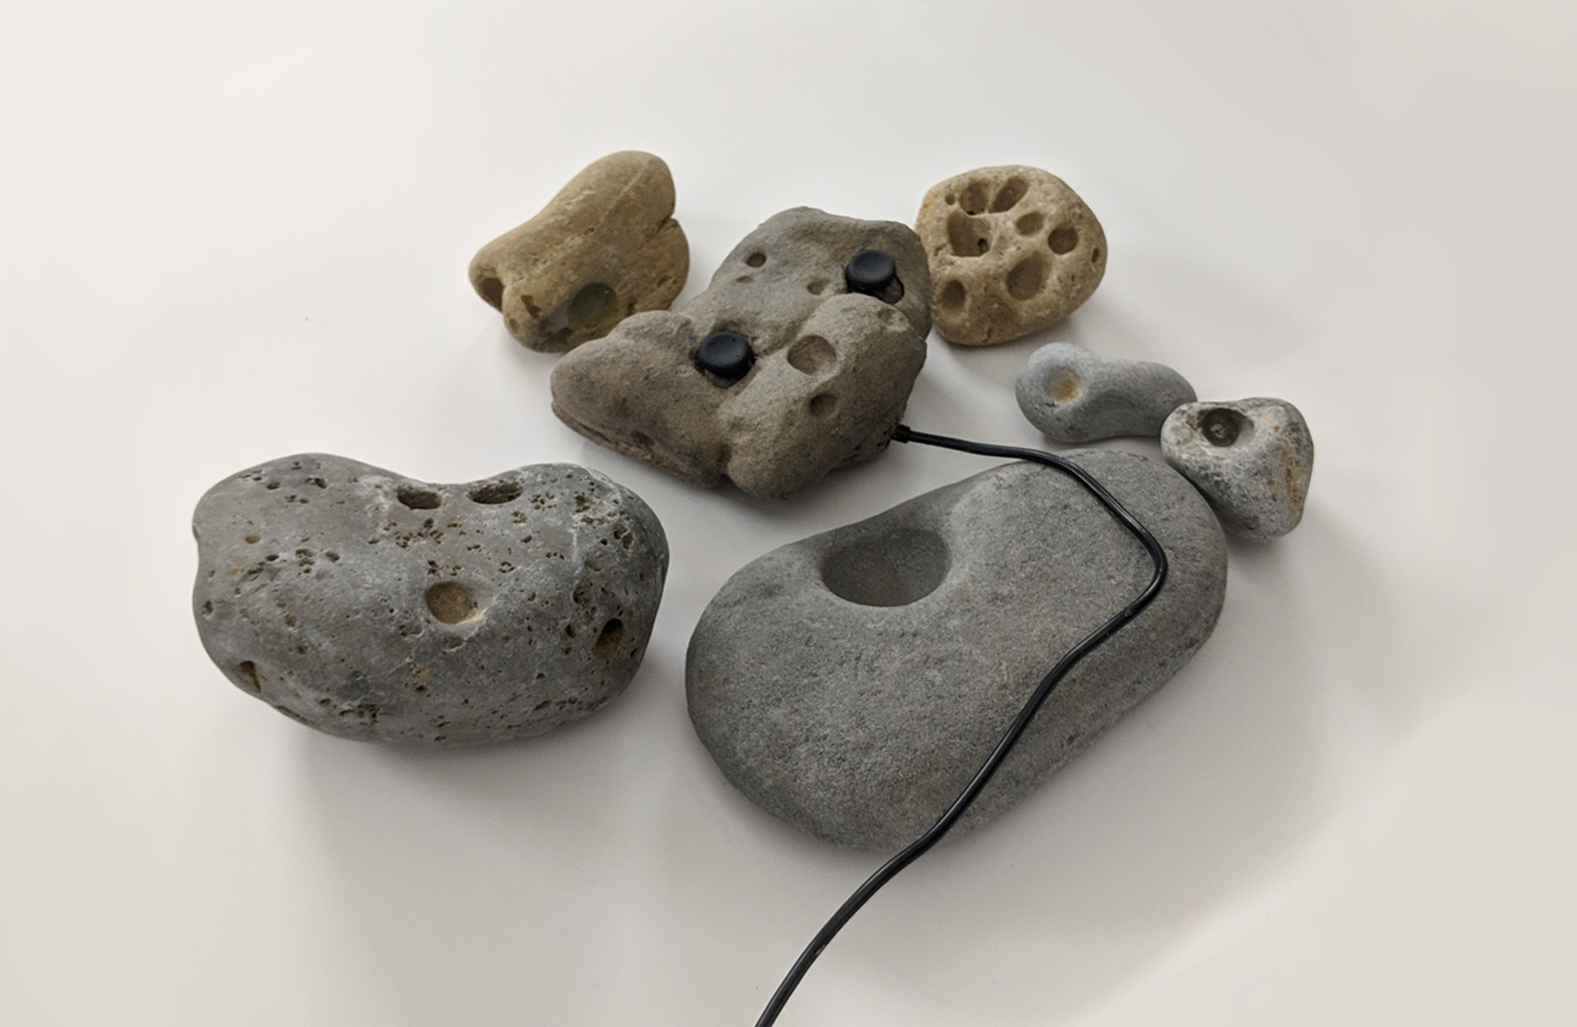 stones with wires